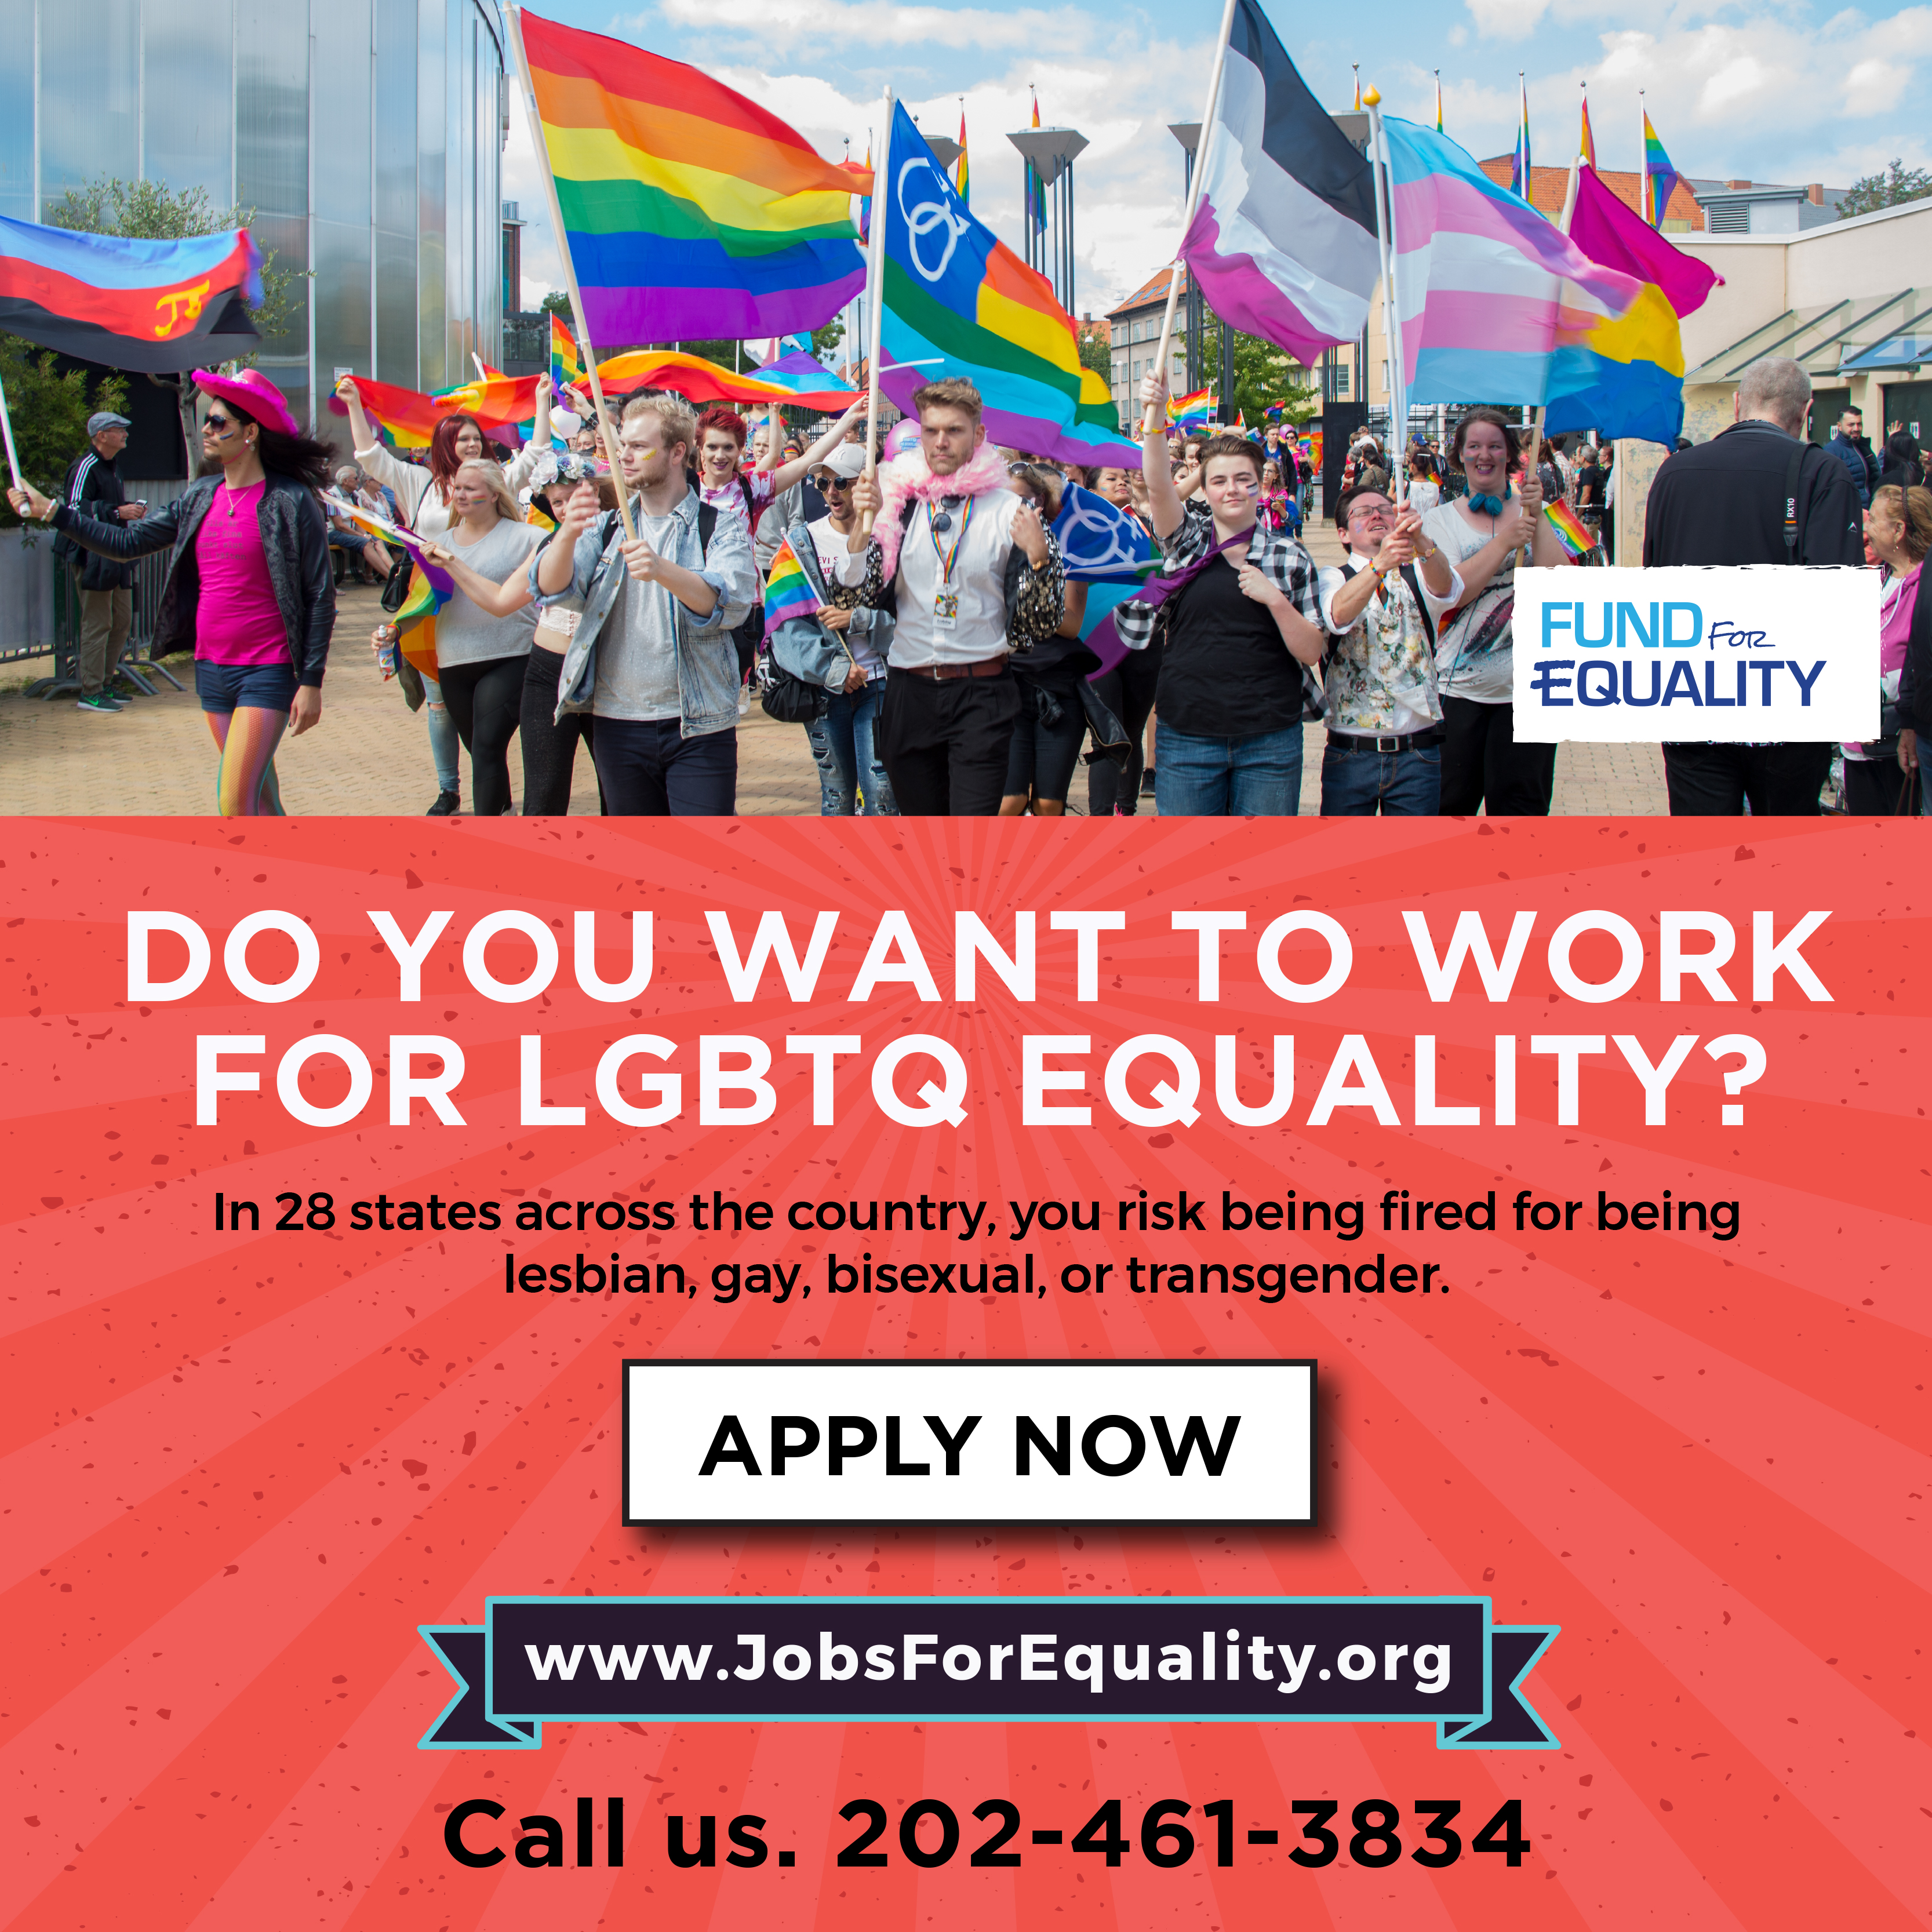 Fund for Equality is hiring people this summer to work for LGBTQ equality. Apply for a summer job today.